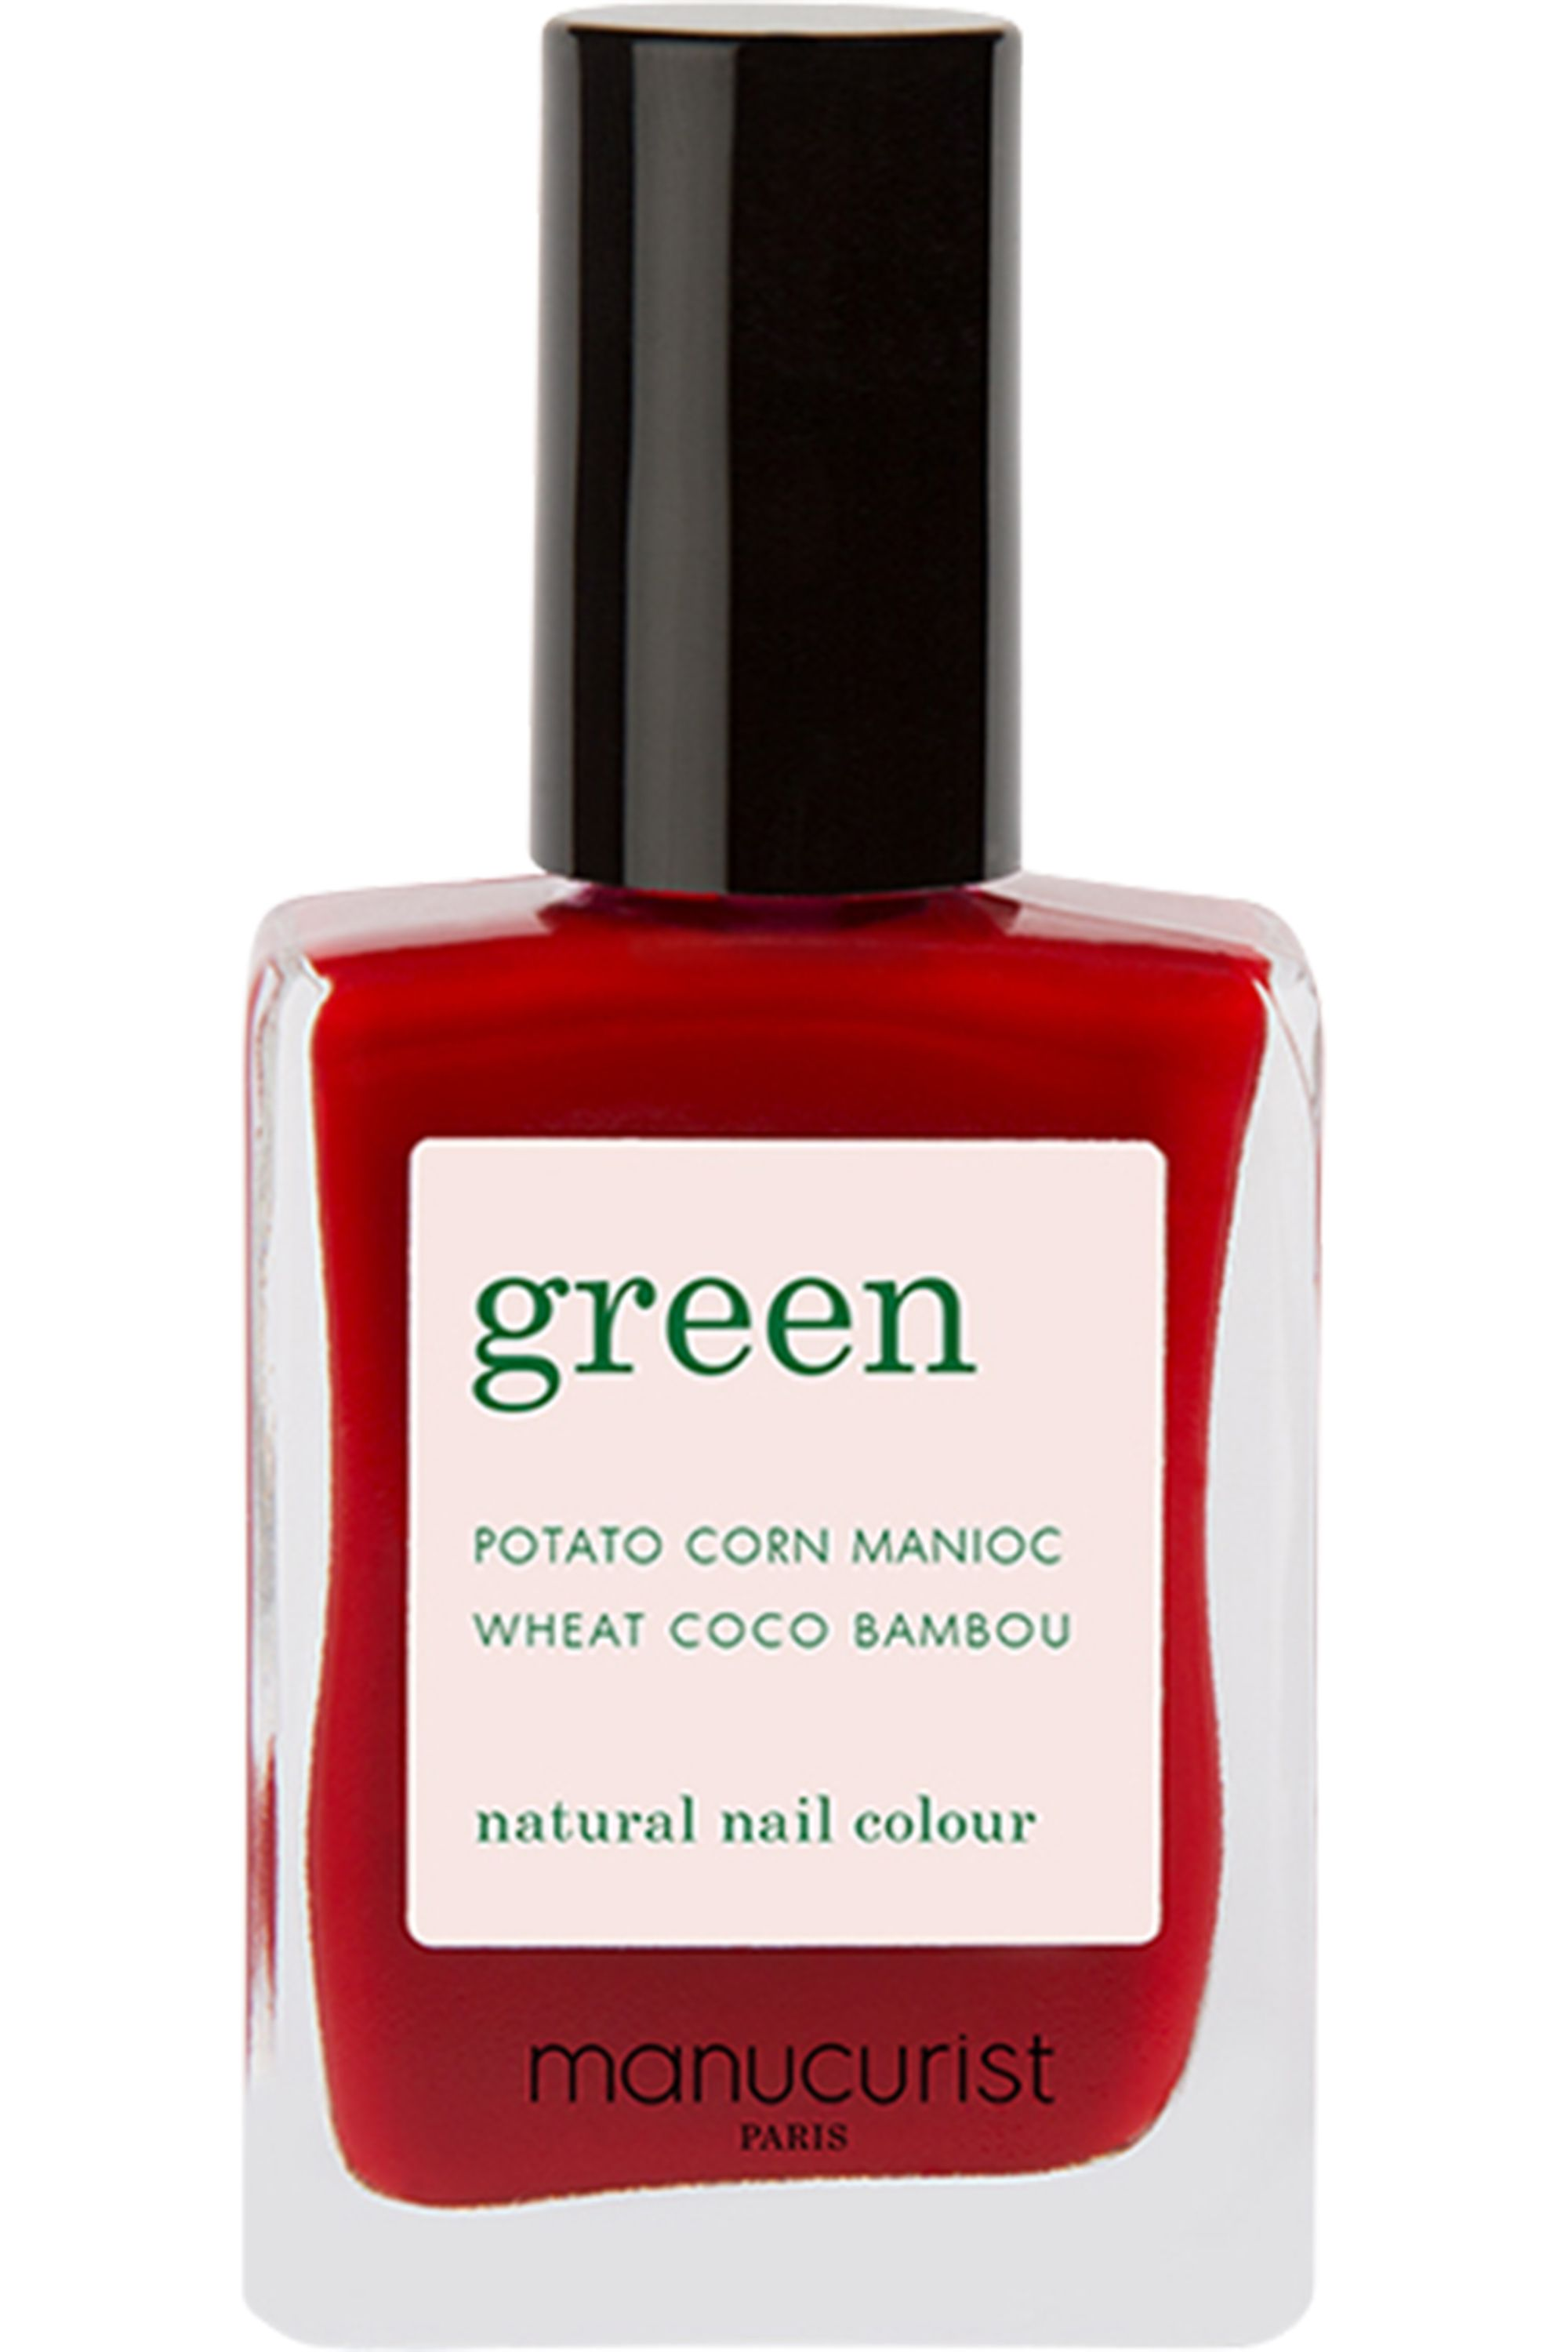 Blissim : Manucurist - Vernis Green - Red Cherry